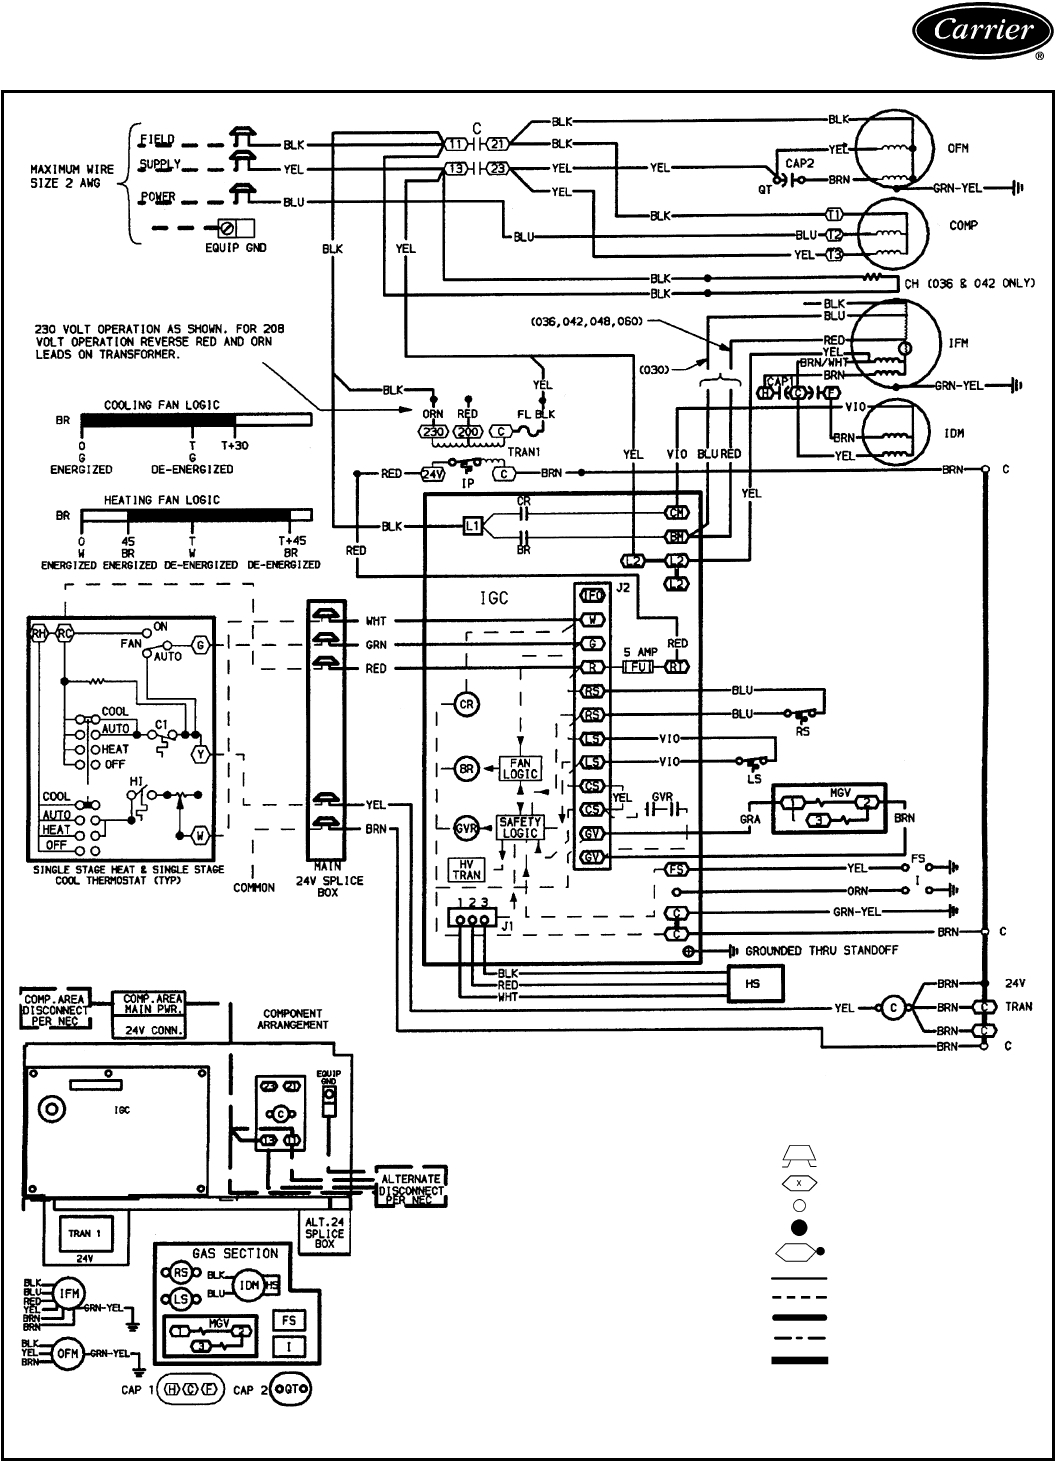 bad wiring diagram free picture schematic carrier evolution wiring diagram free picture carrier infinity thermostat wiring diagram | free wiring ... #12